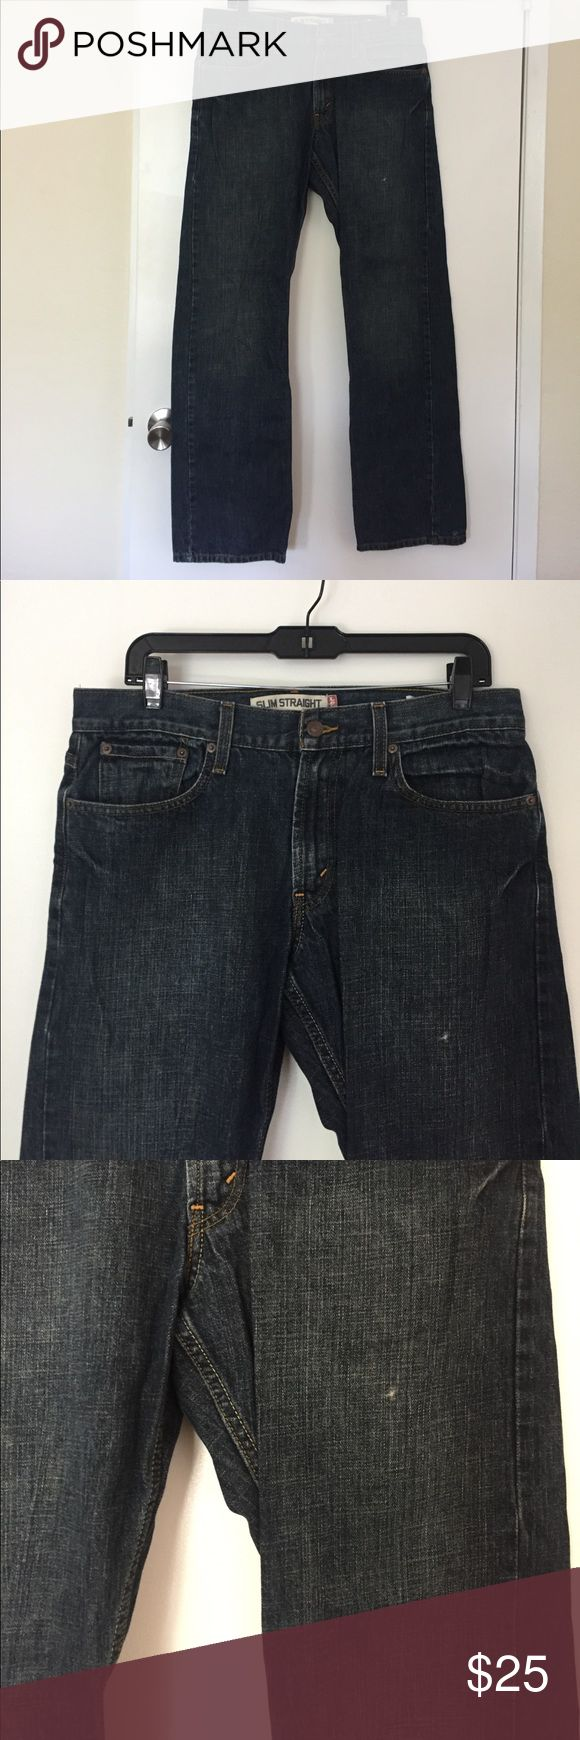 "MEN'S Levi's- ""Slim Straight"" Jeans Sim Straight Levi's jeans for men.  W 33 L 32.  Only worn once. Only ""snag"" is shown in the third pic.  Price is negotiable so leave an offer! Levi's Jeans Slim Straight"